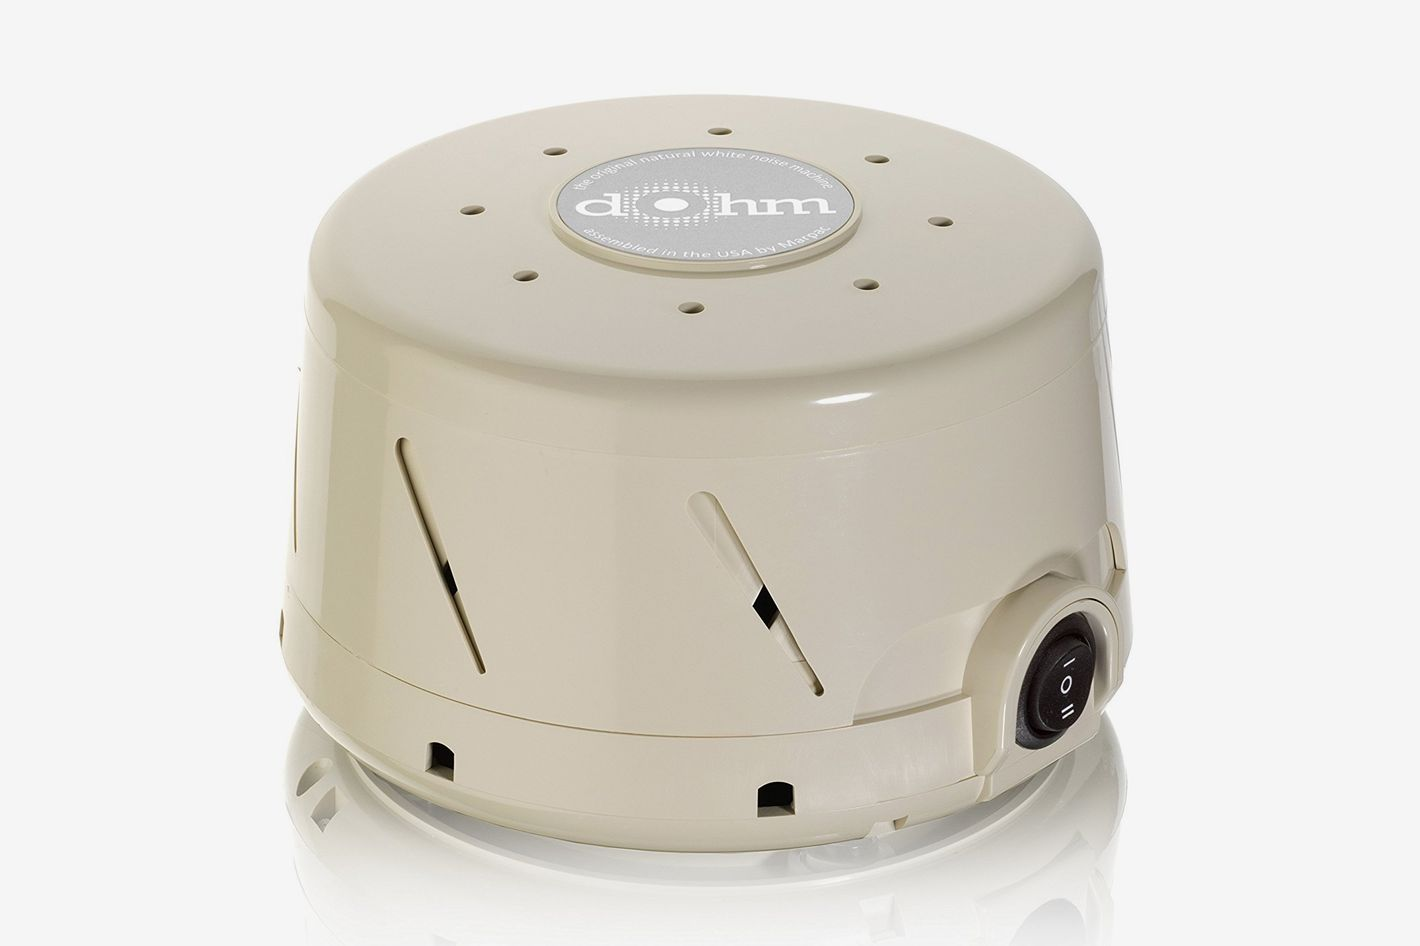 Marpac Dohm Classic White Noise Sound Machine, Tan